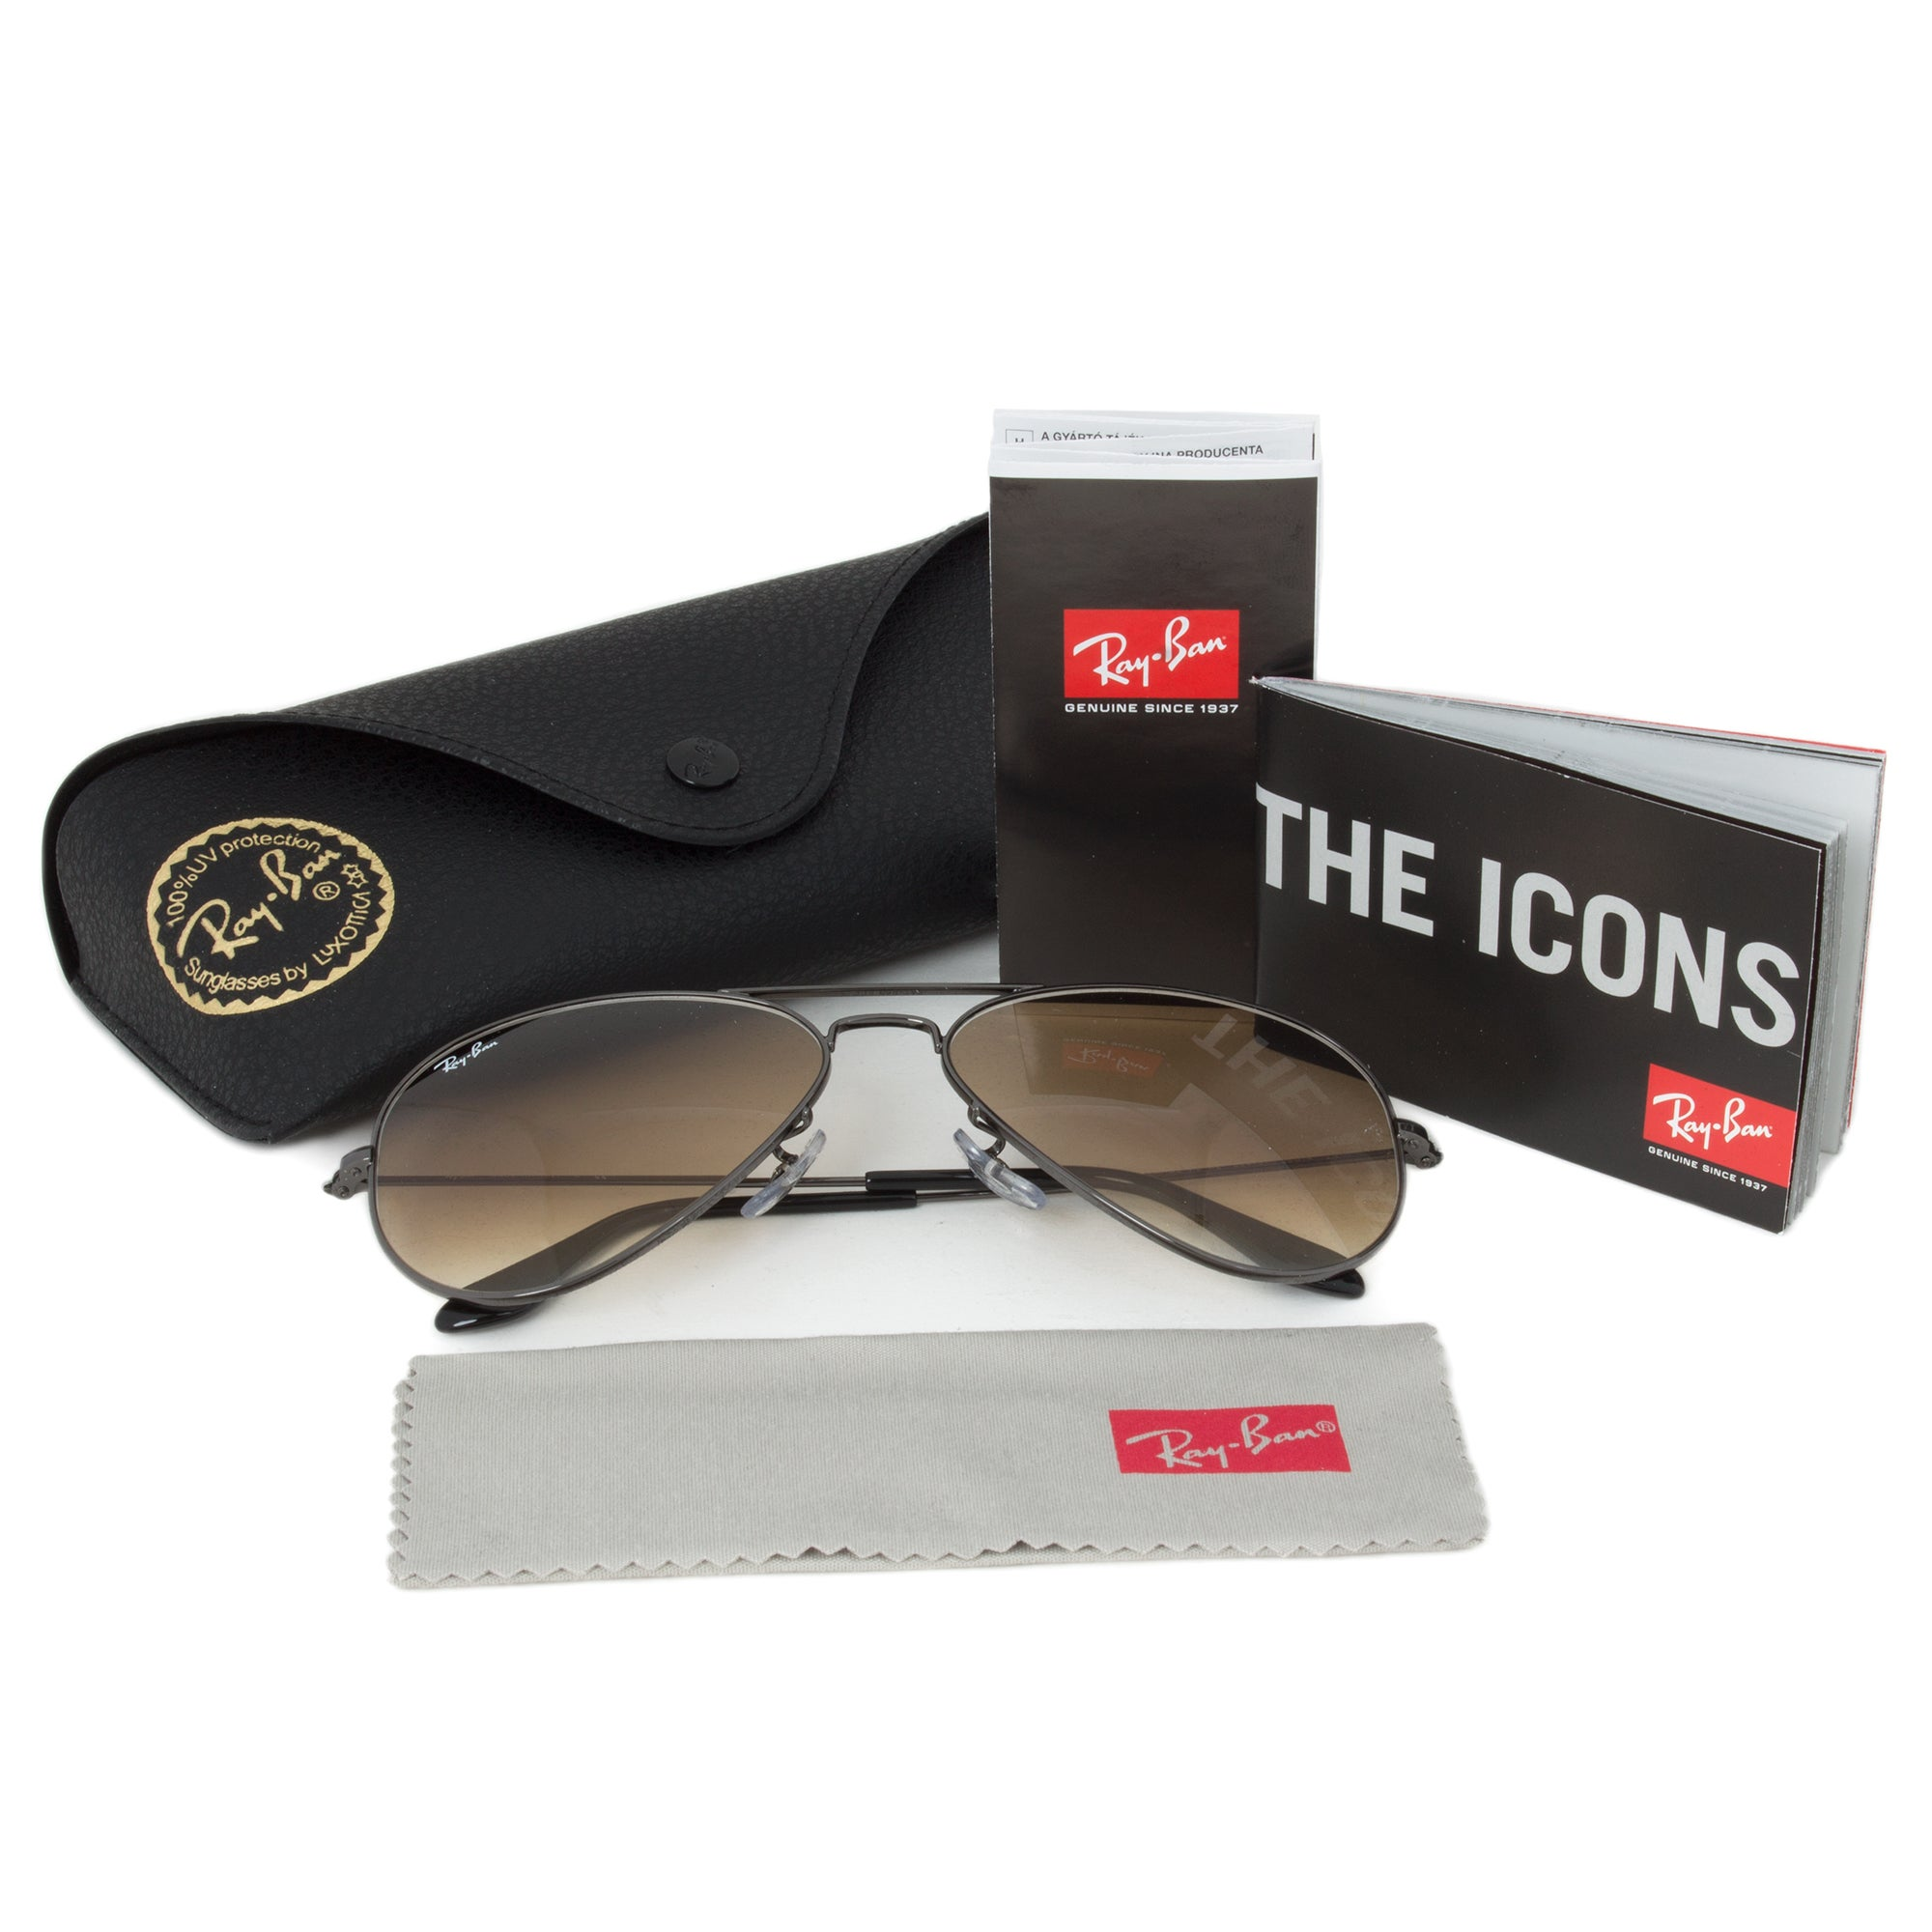 5f6147992b Shop Ray-Ban RB3025 004 51 Size 58 Brown Gradient Lens Gunmetal Frame  Aviator Sunglasses - Free Shipping Today - Overstock - 10482707